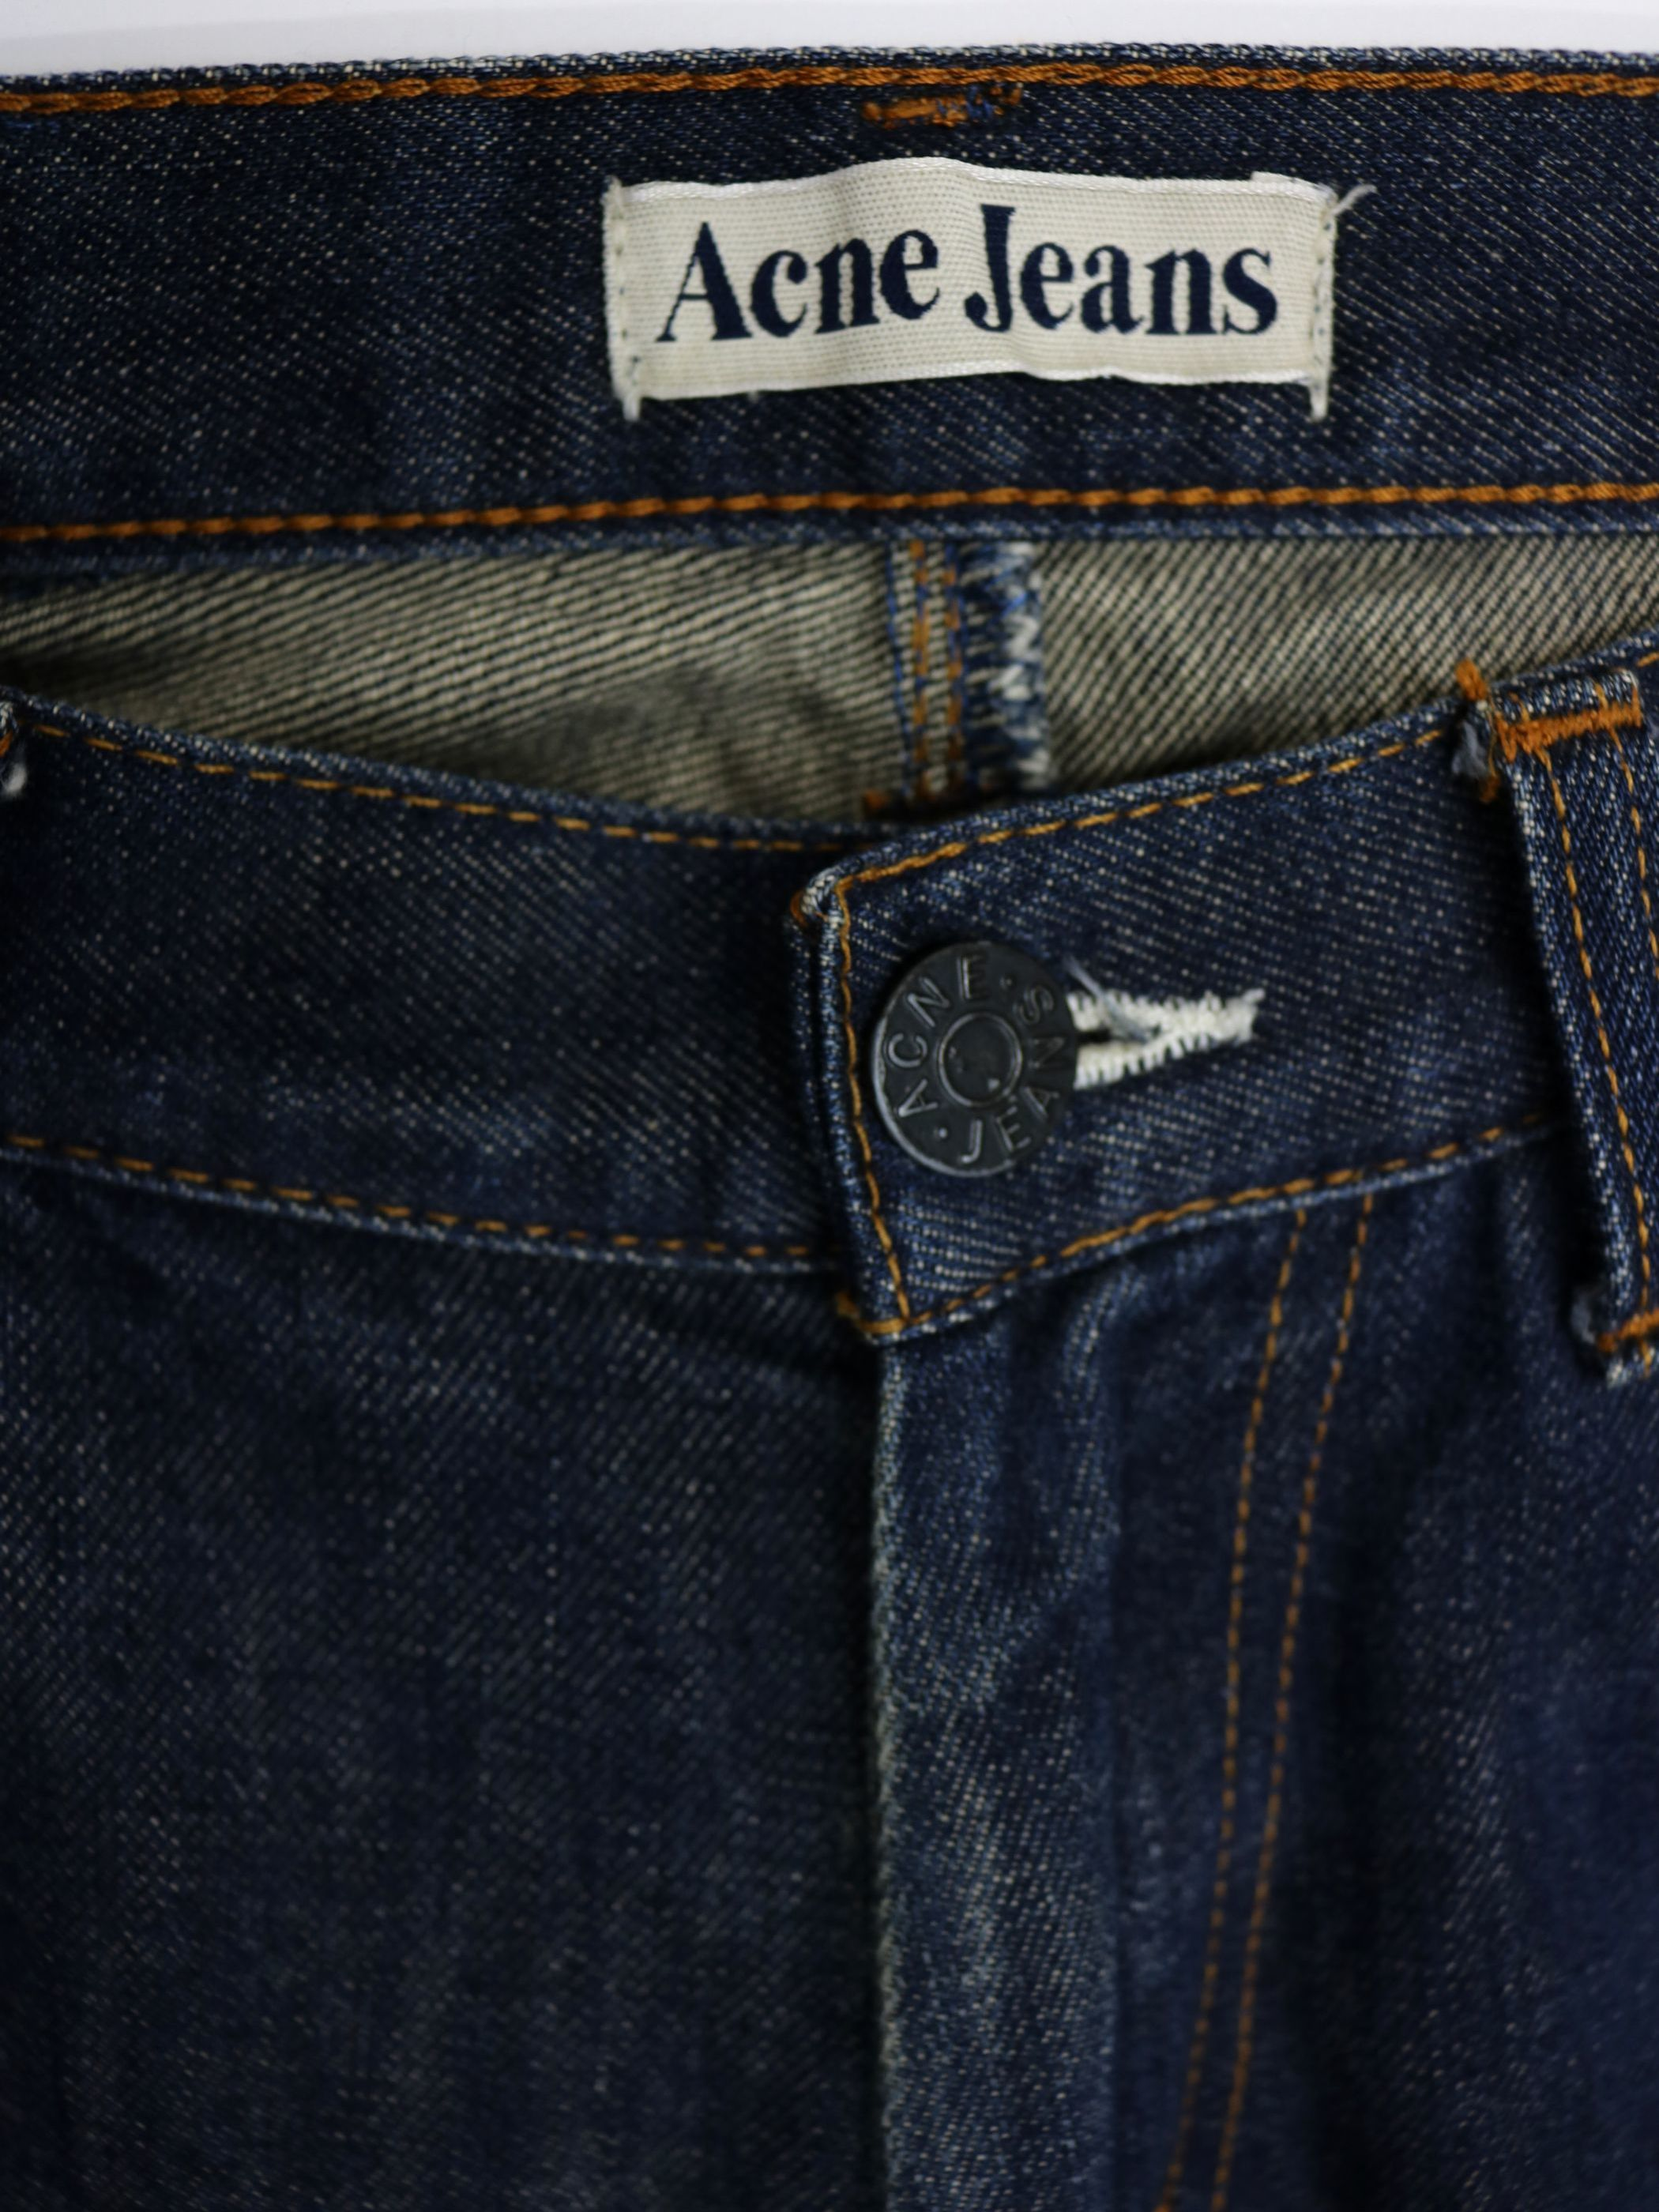 Acne Jeans denim pants